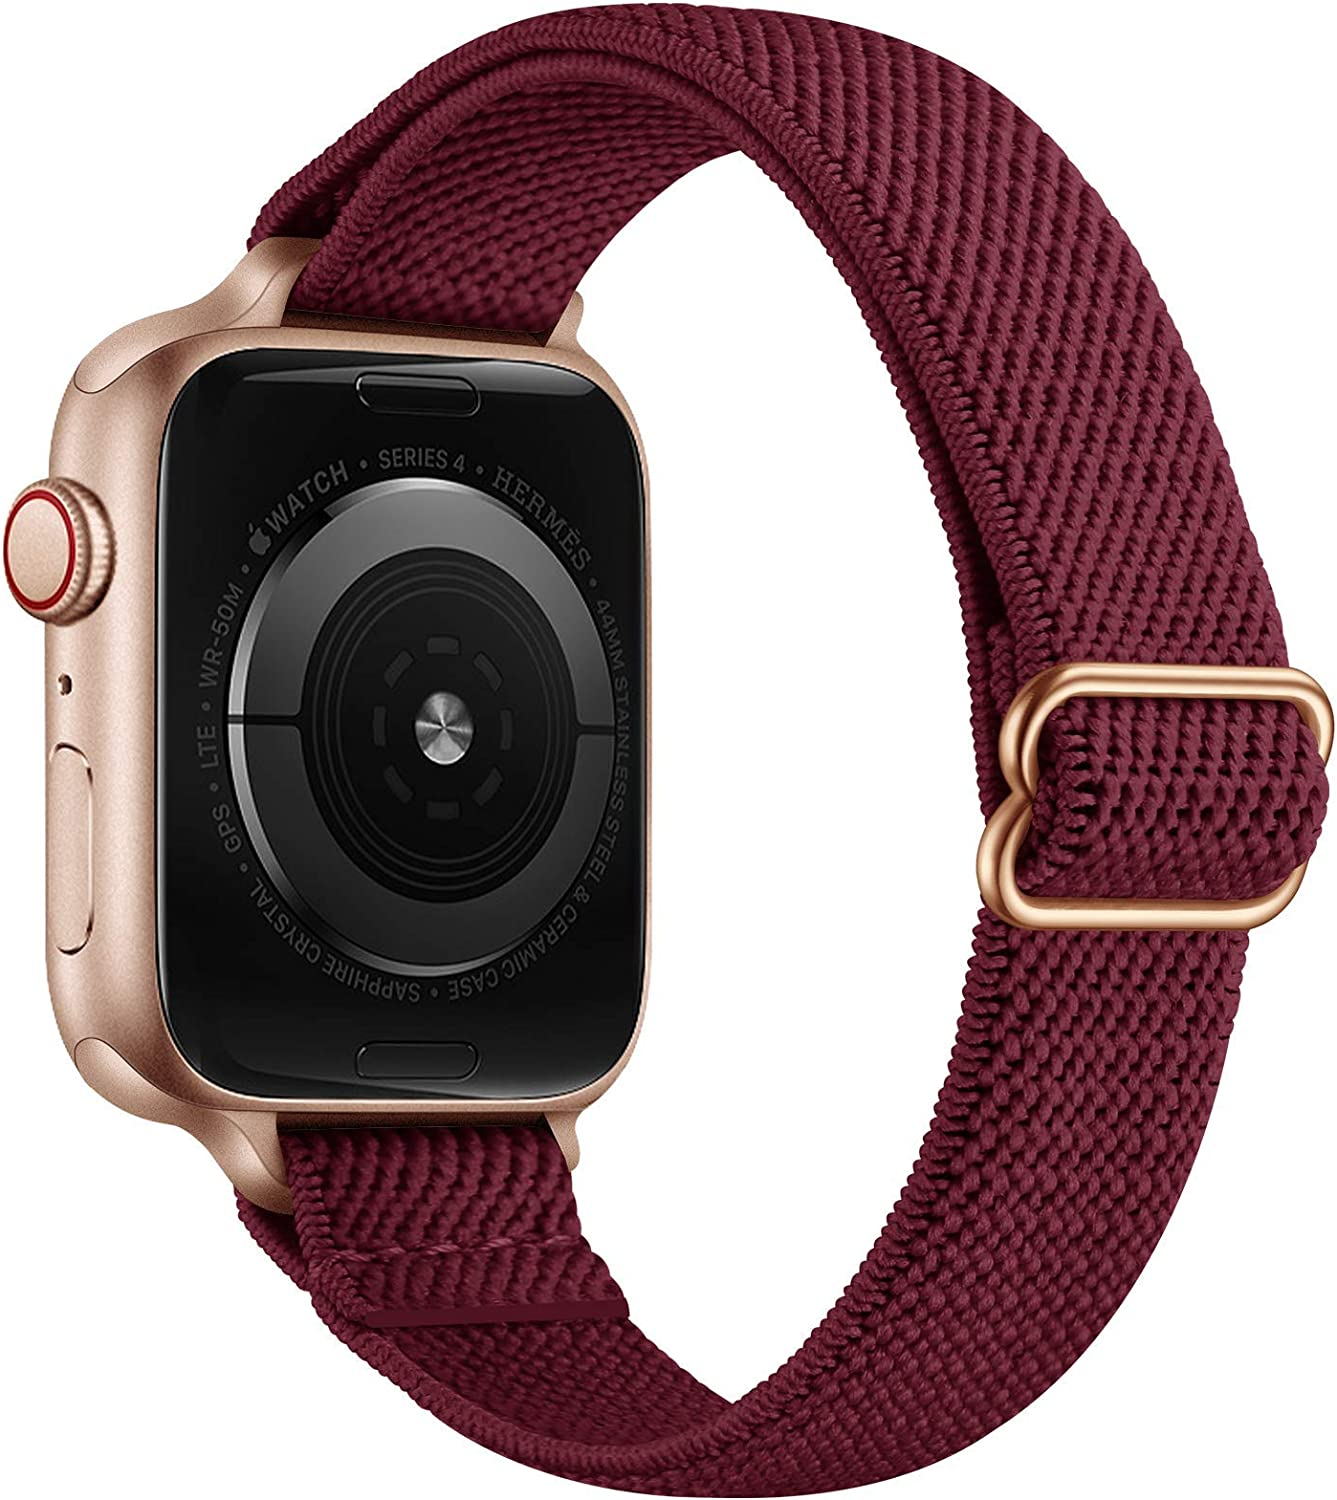 SICCIDEN Slim Stretchy Solo Loop Bands Compatible with Apple Watch Band 40mm 38mm 44mm 42mm, Women Elastics Nylon Thin Band Strap for iWatch SE Series 6 5 4 3 2 1 (Wine Red/Rose Gold, 40mm 38mm)